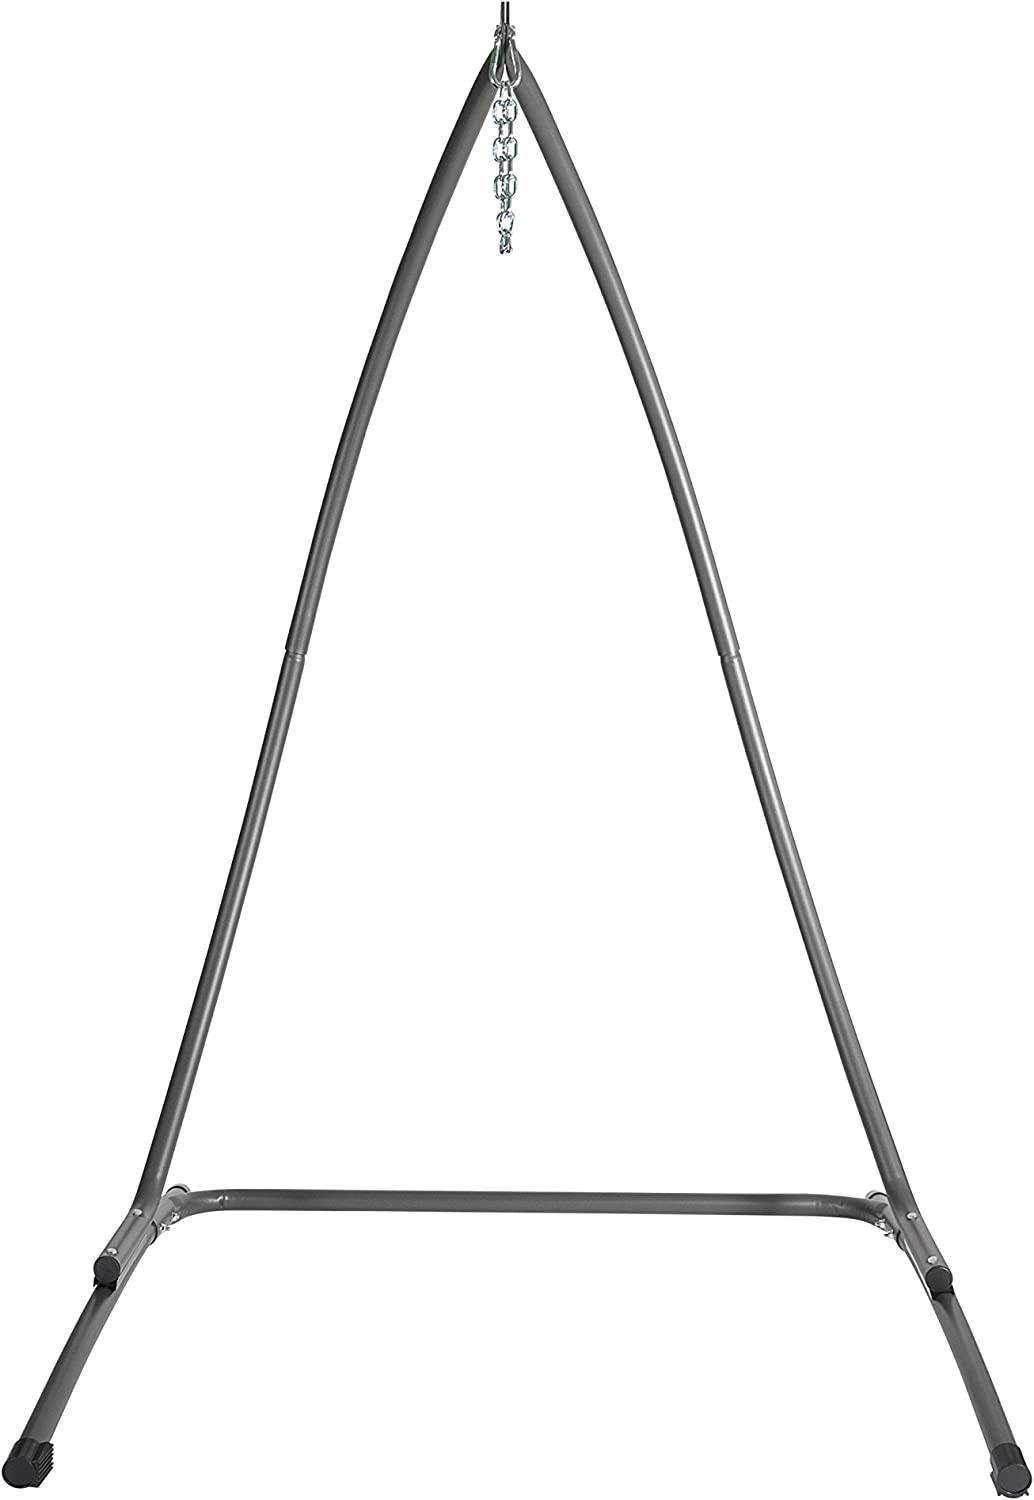 Jobek 10847 metal hammock chair stand CHAIR STAND anthracite